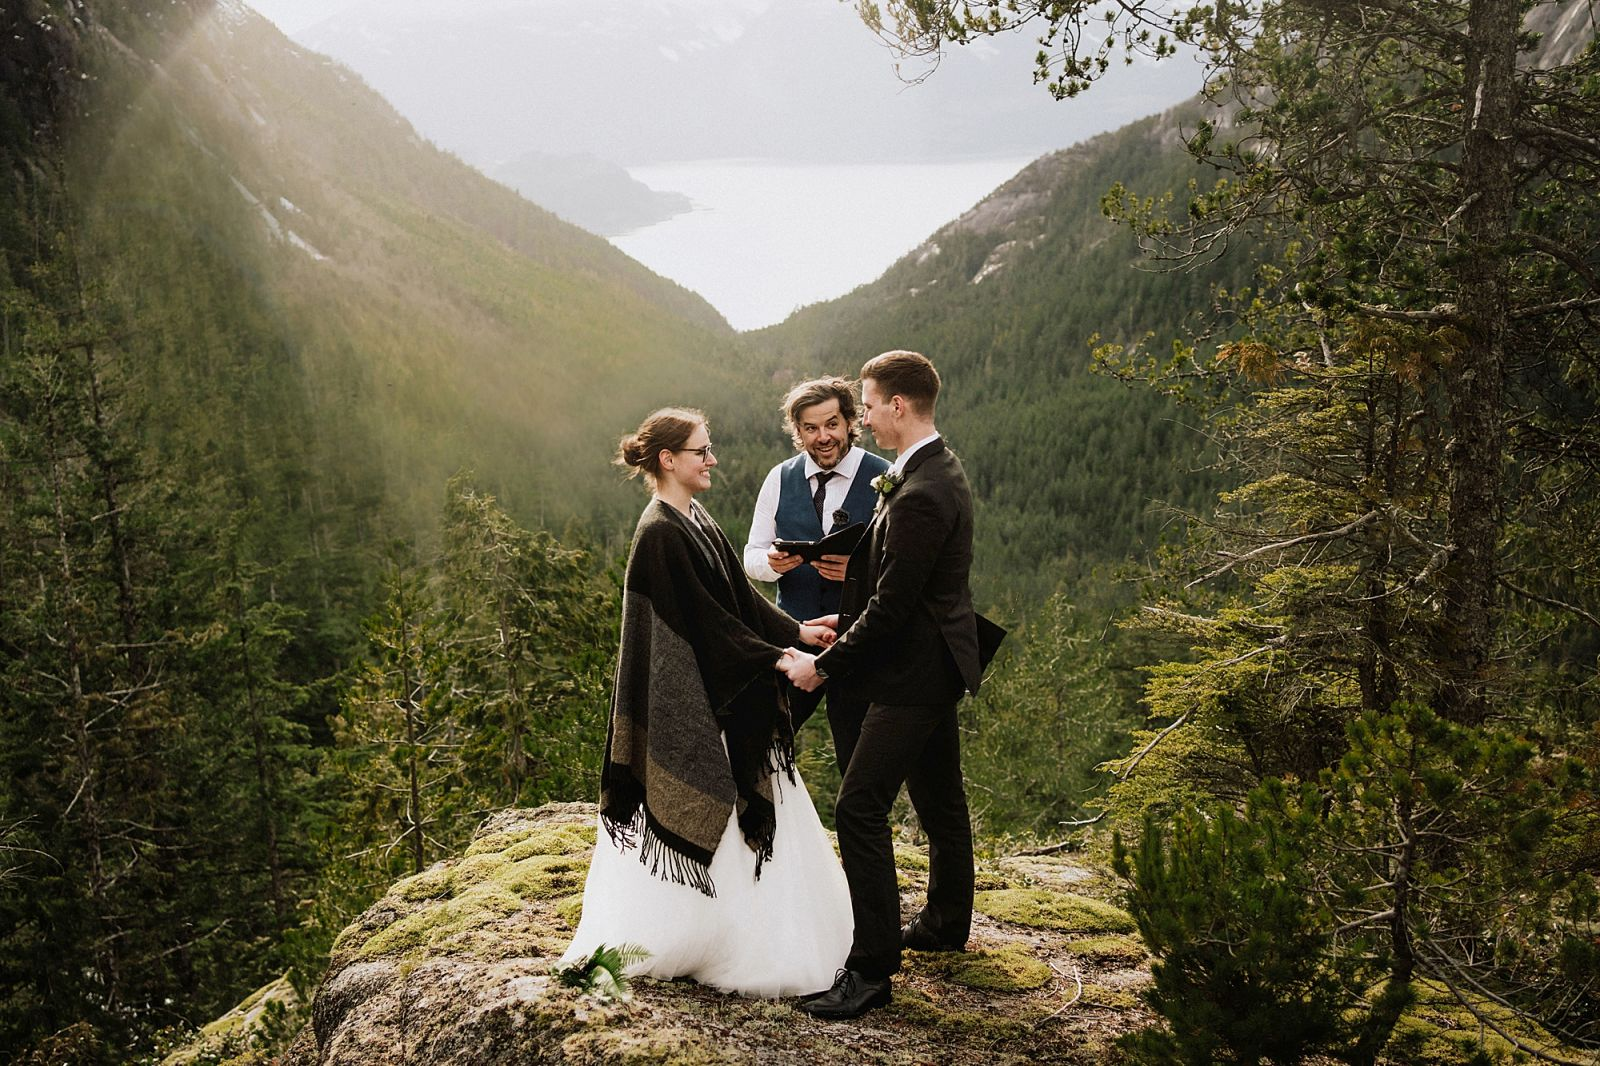 Whistler wedding officiant at elopement ceremony